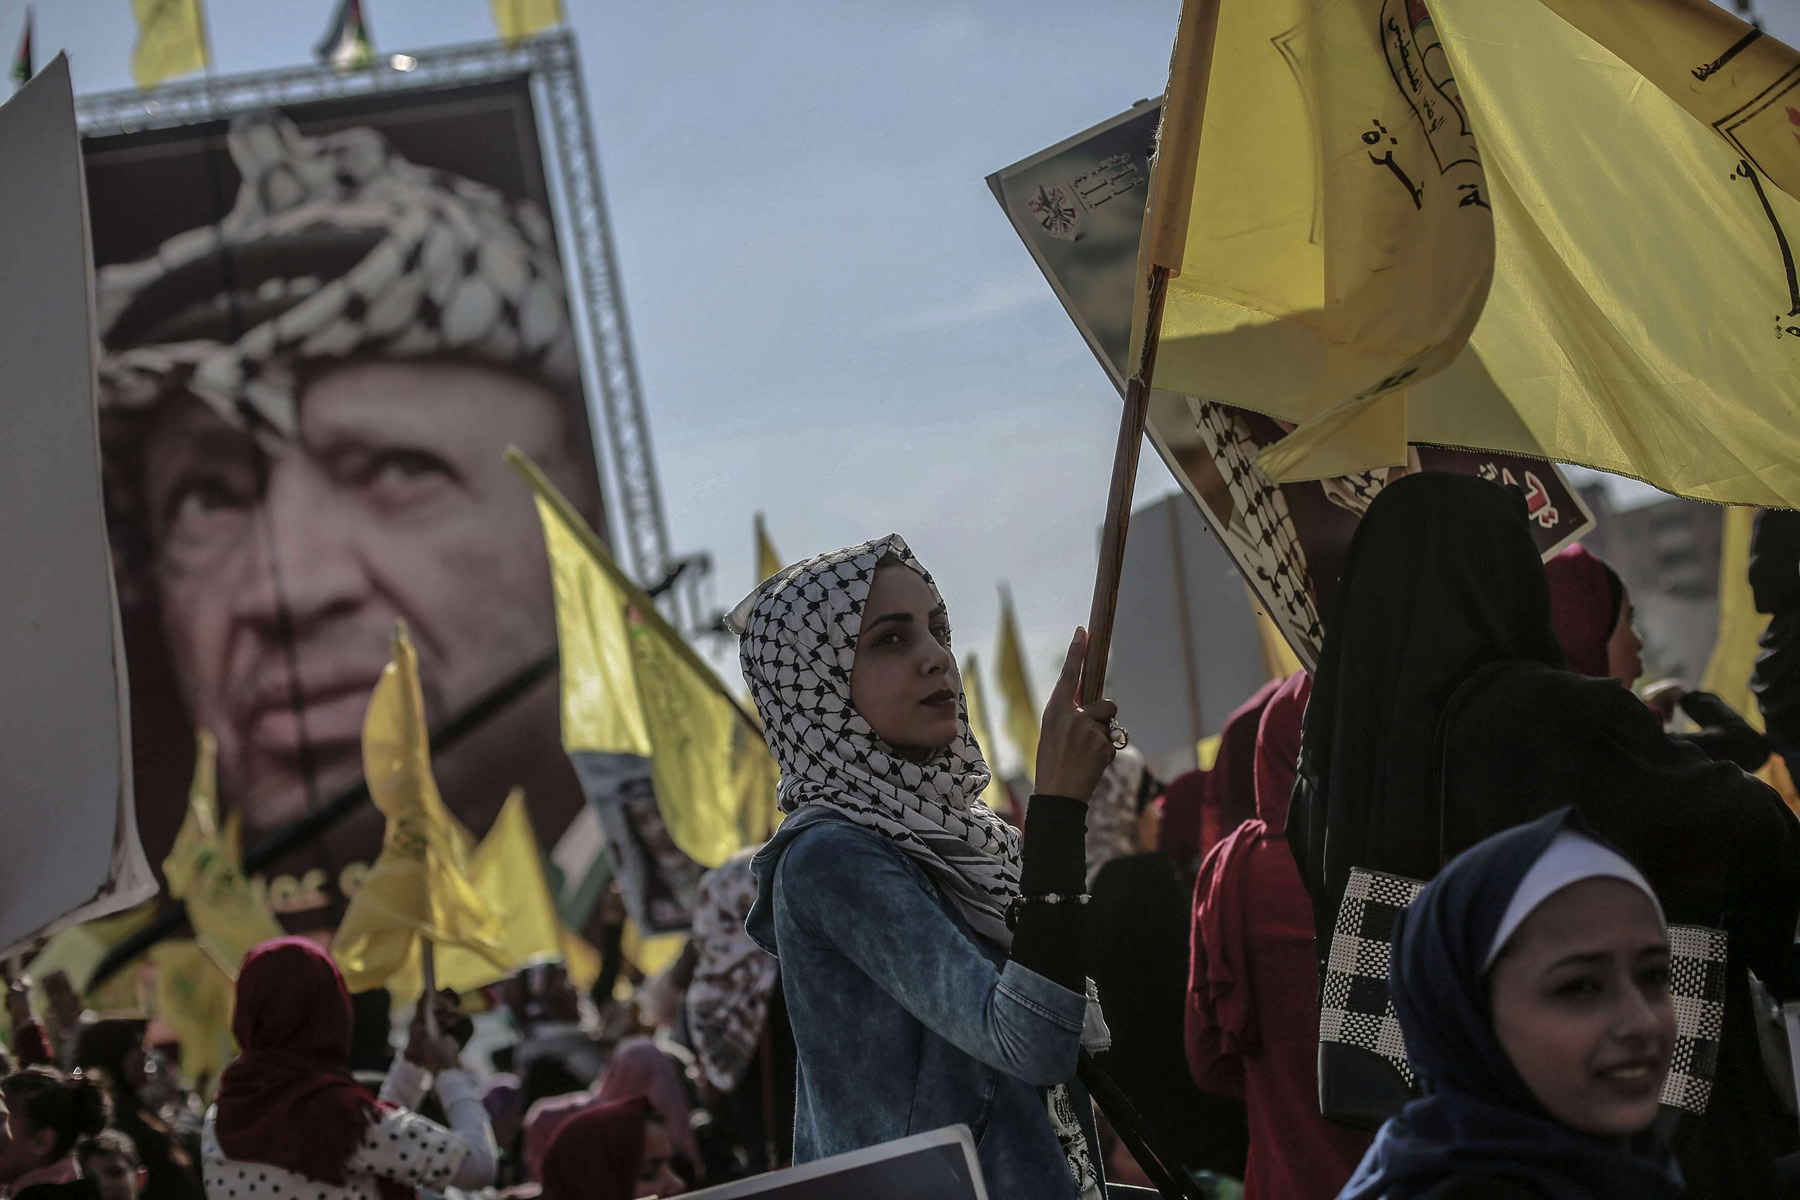 A return to the basics. Palestinian Fatah supporters take part in a rally with a poster of late leader Yasser Arafat in the background, last November. (dpa)